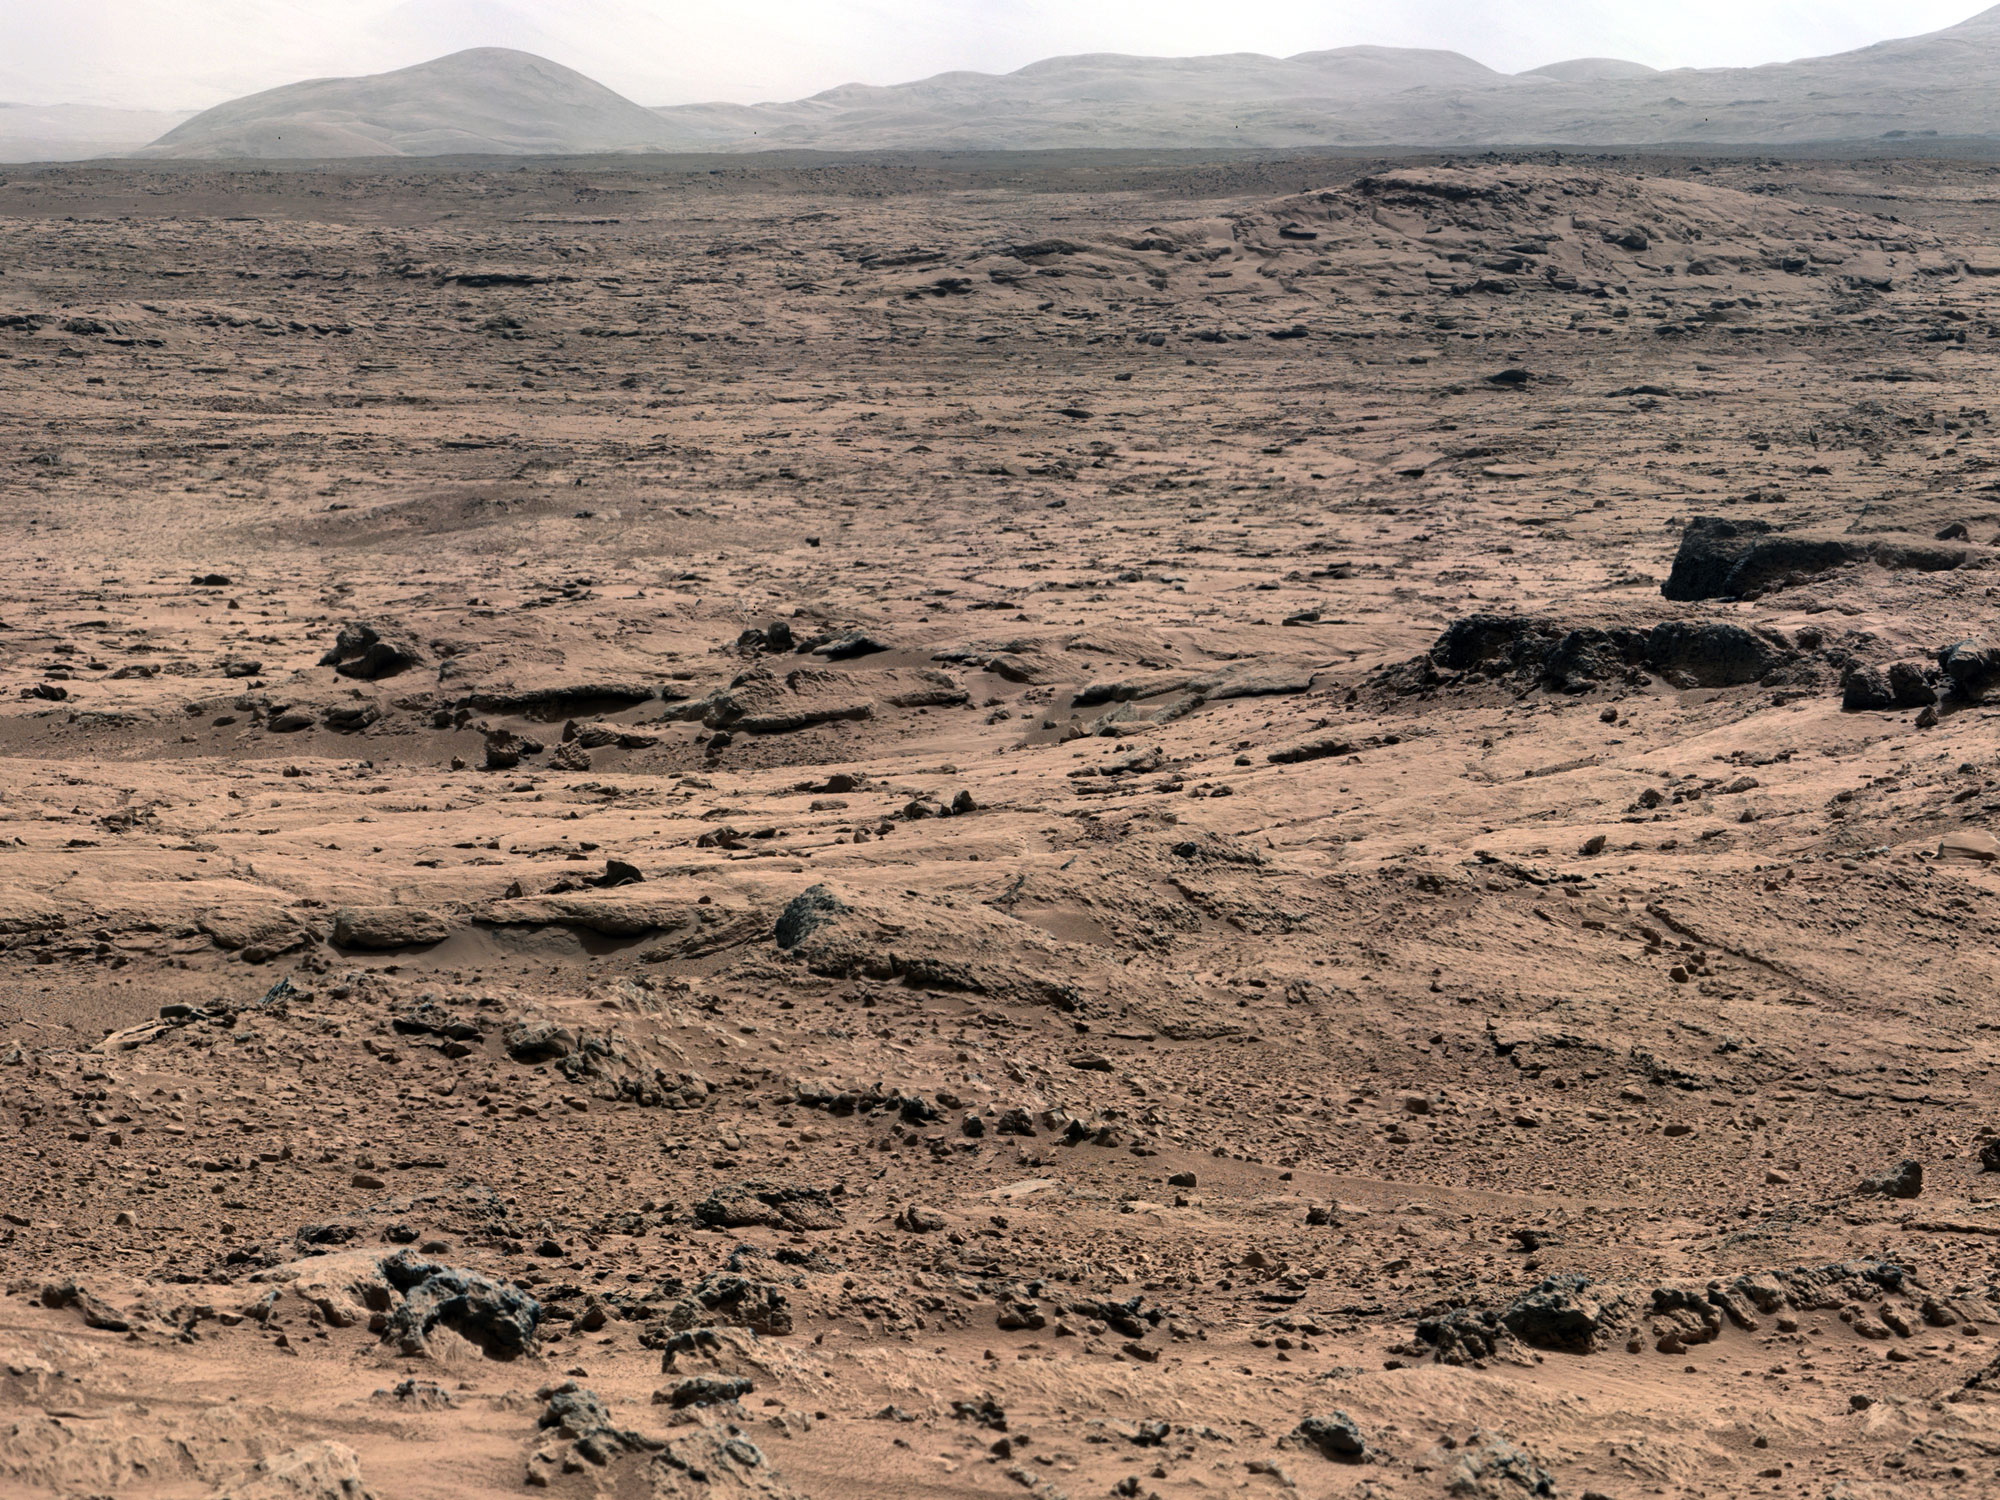 mars rover pictures hd - photo #22